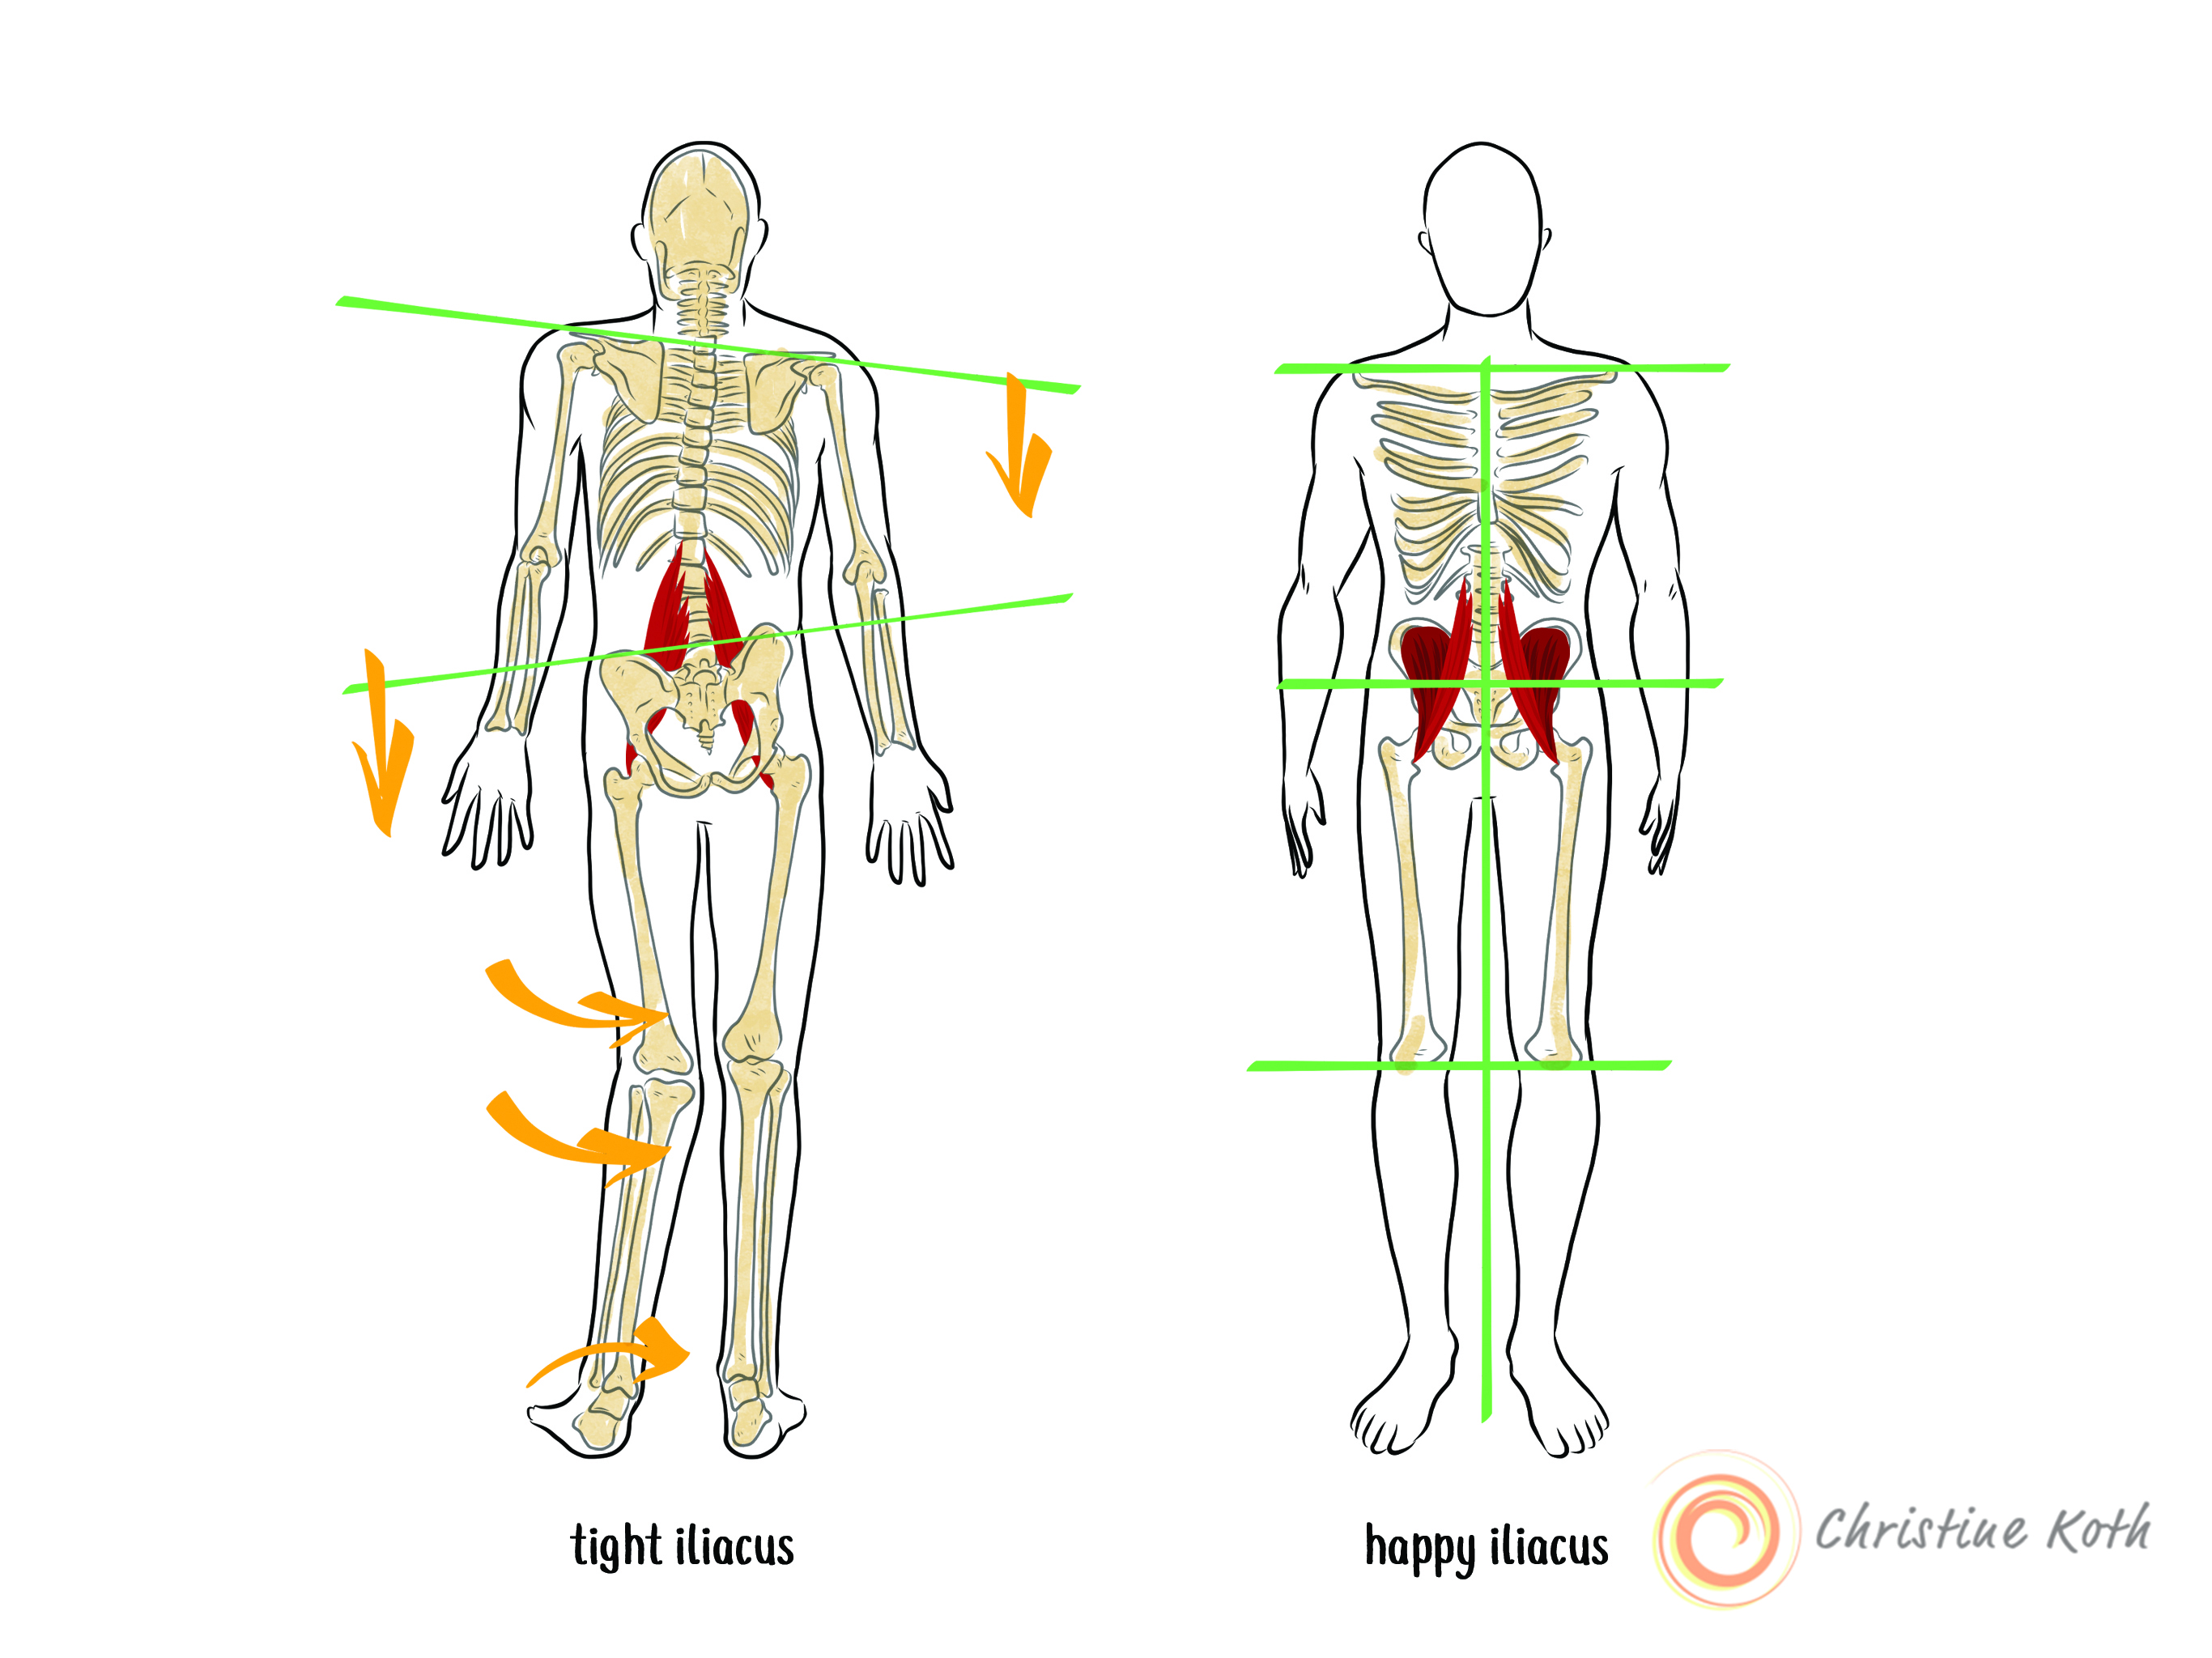 tight iliacus causes dysfunction in the wole body